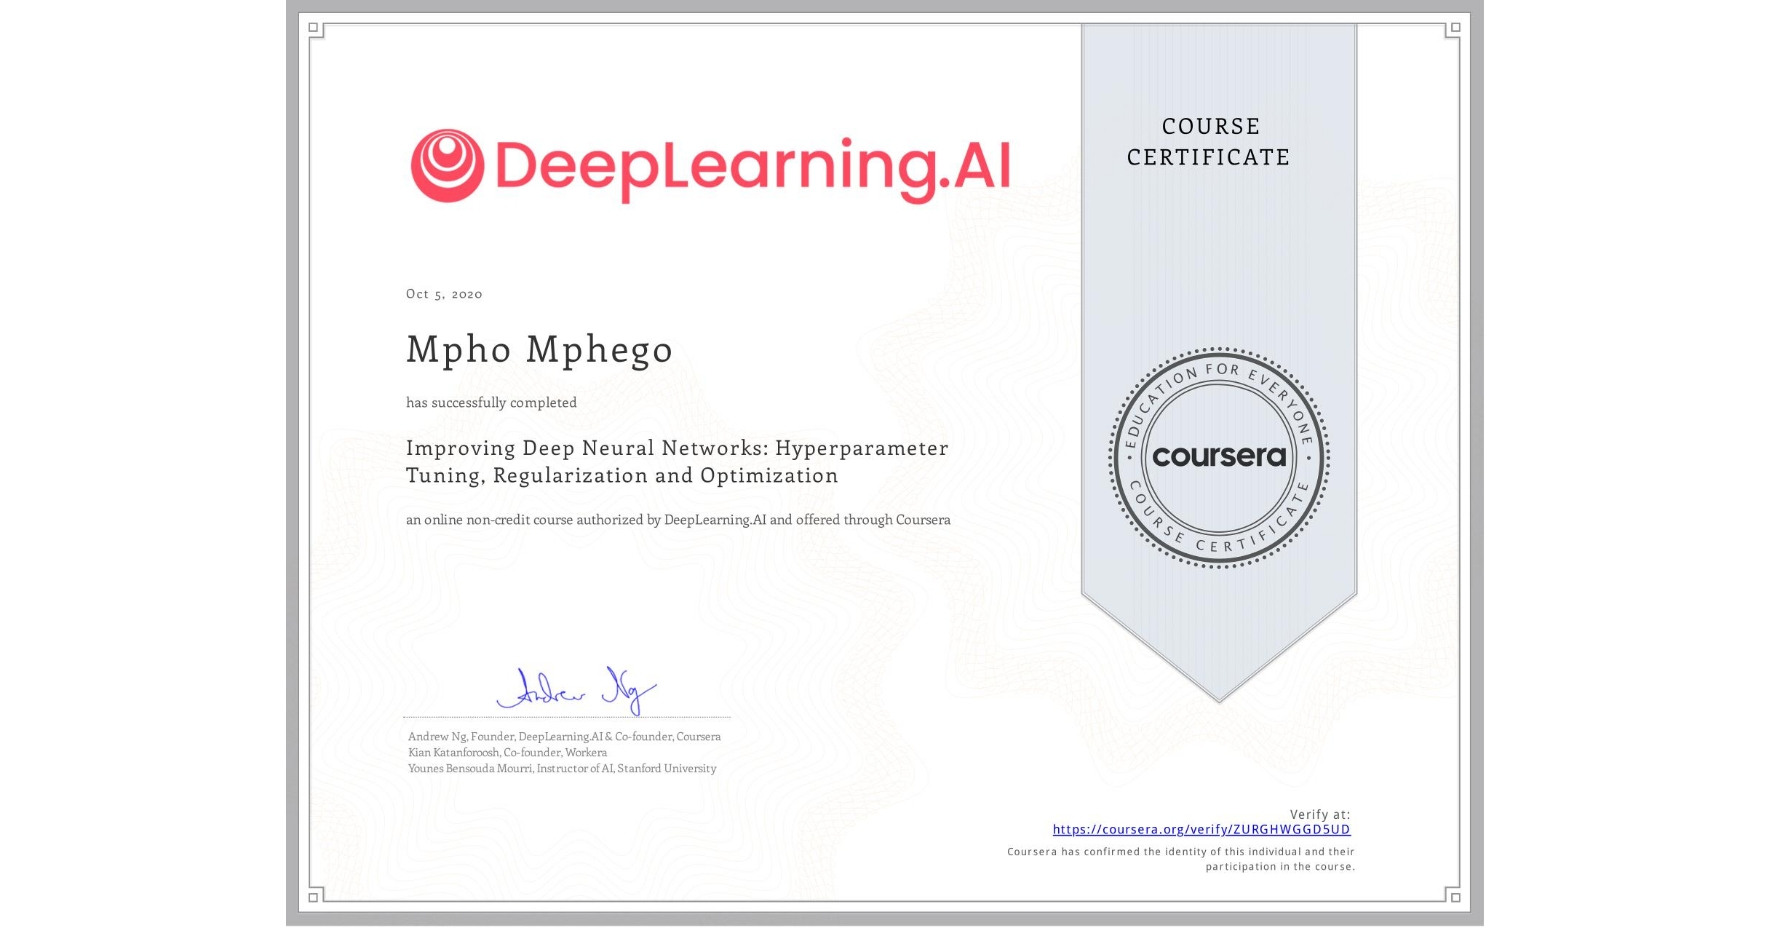 View certificate for Mpho Mphego, Improving Deep Neural Networks: Hyperparameter Tuning, Regularization and Optimization, an online non-credit course authorized by DeepLearning.AI and offered through Coursera